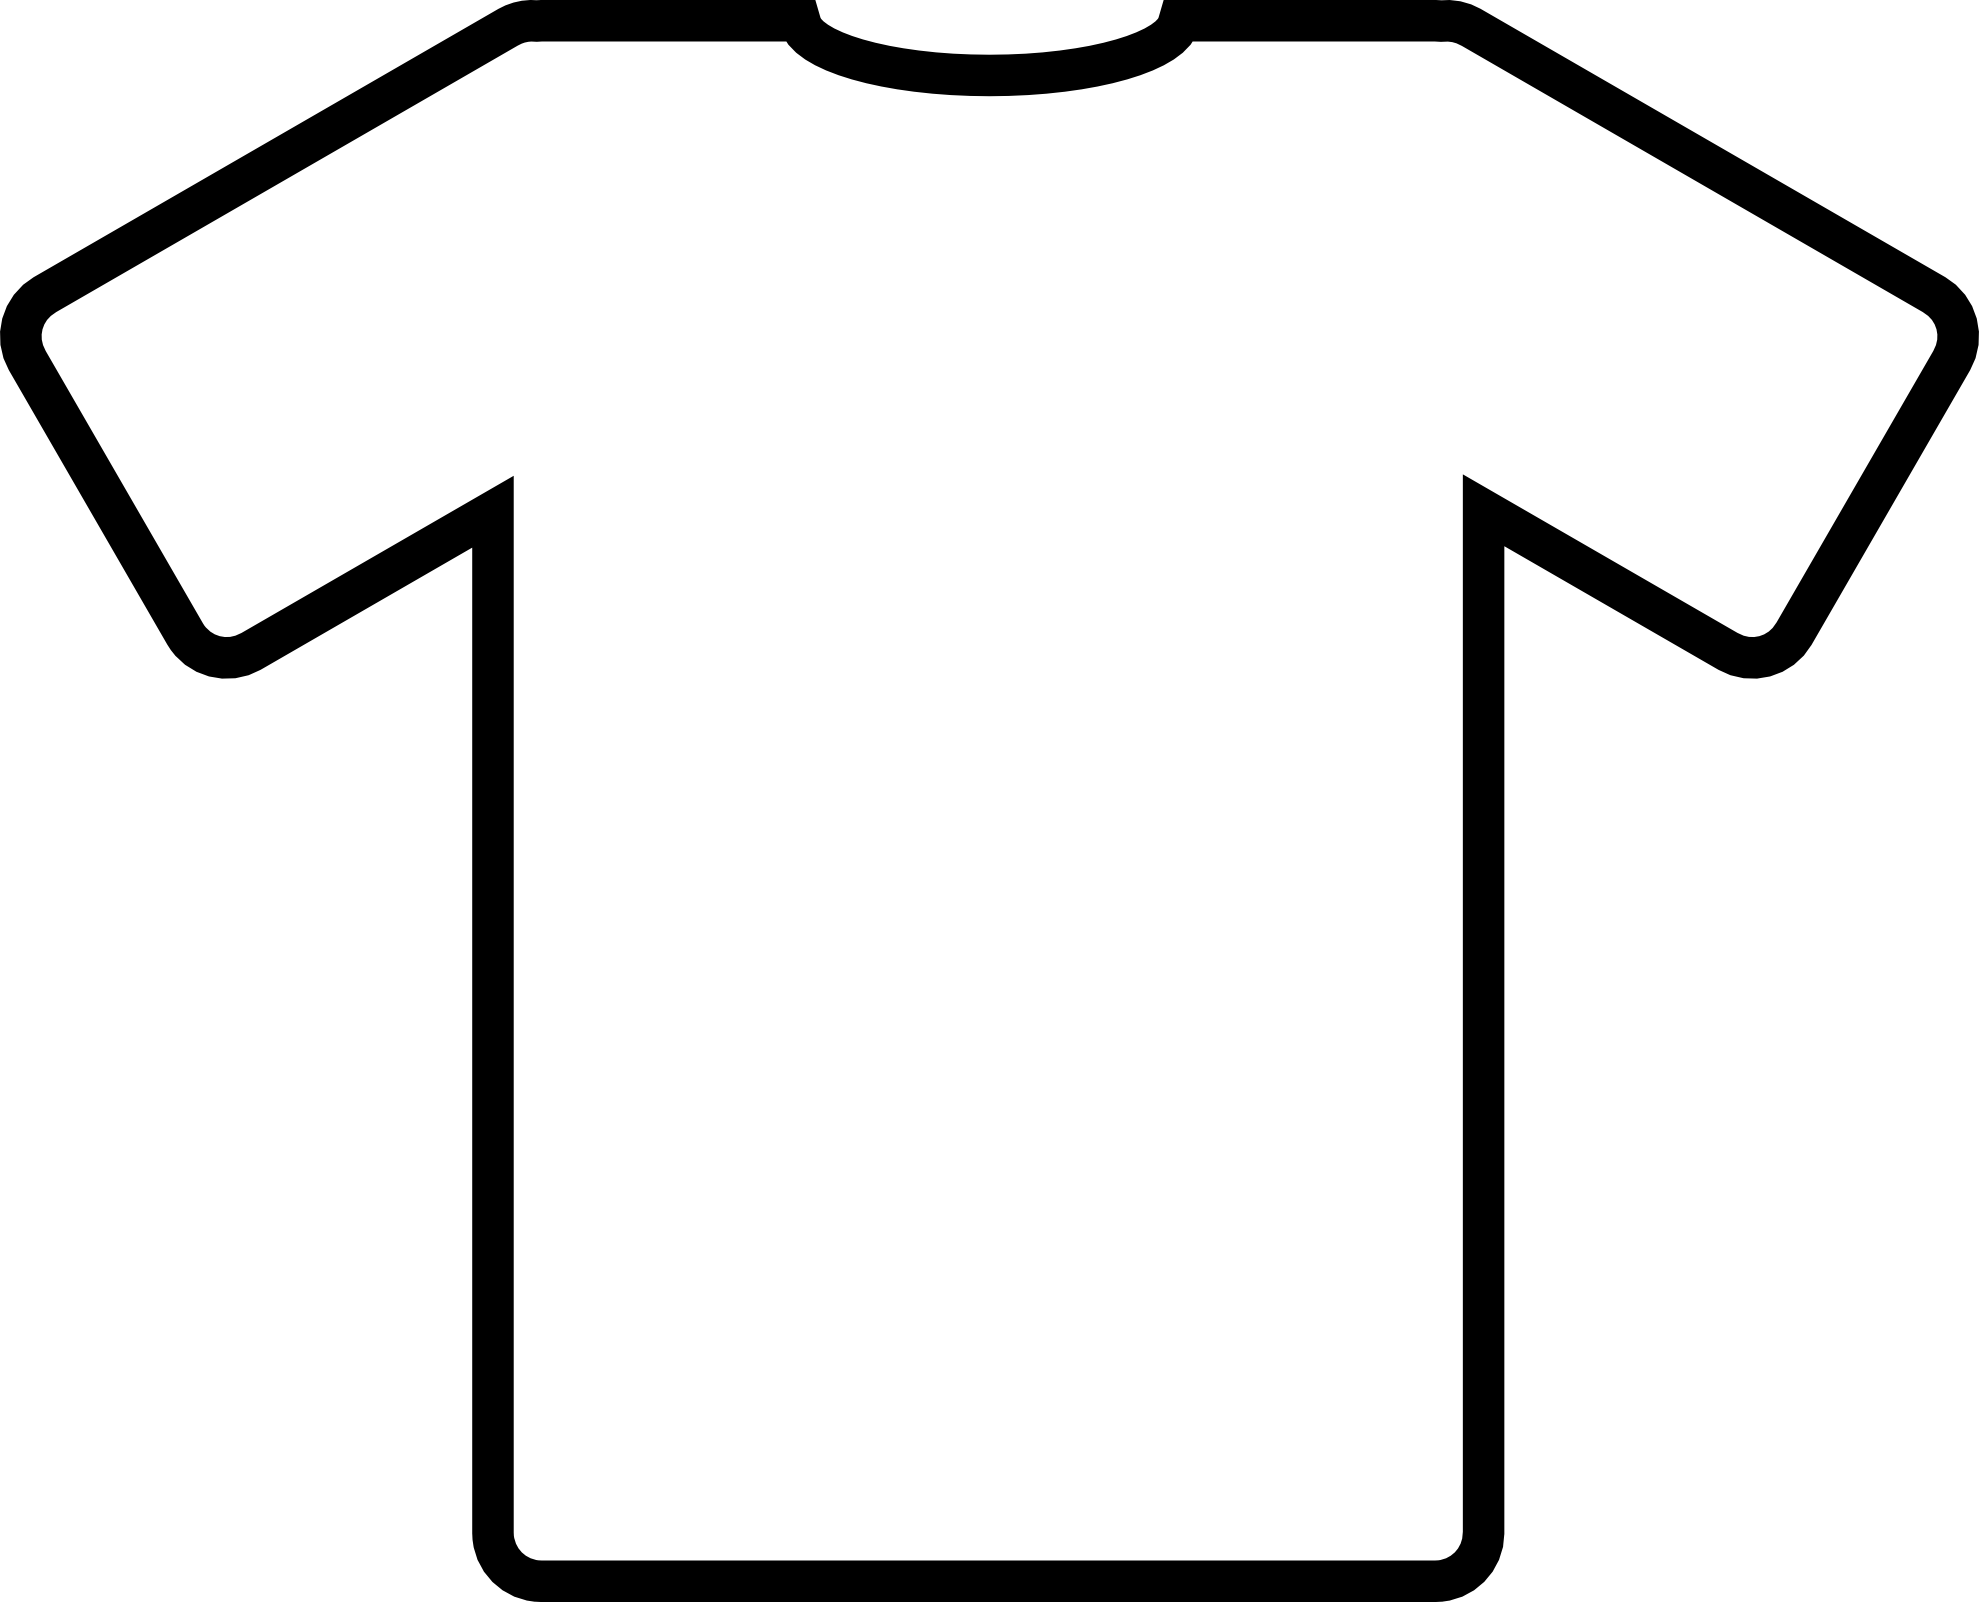 t shirt coloring page t shirt outline clipart for kids coloring clipart best shirt coloring t page